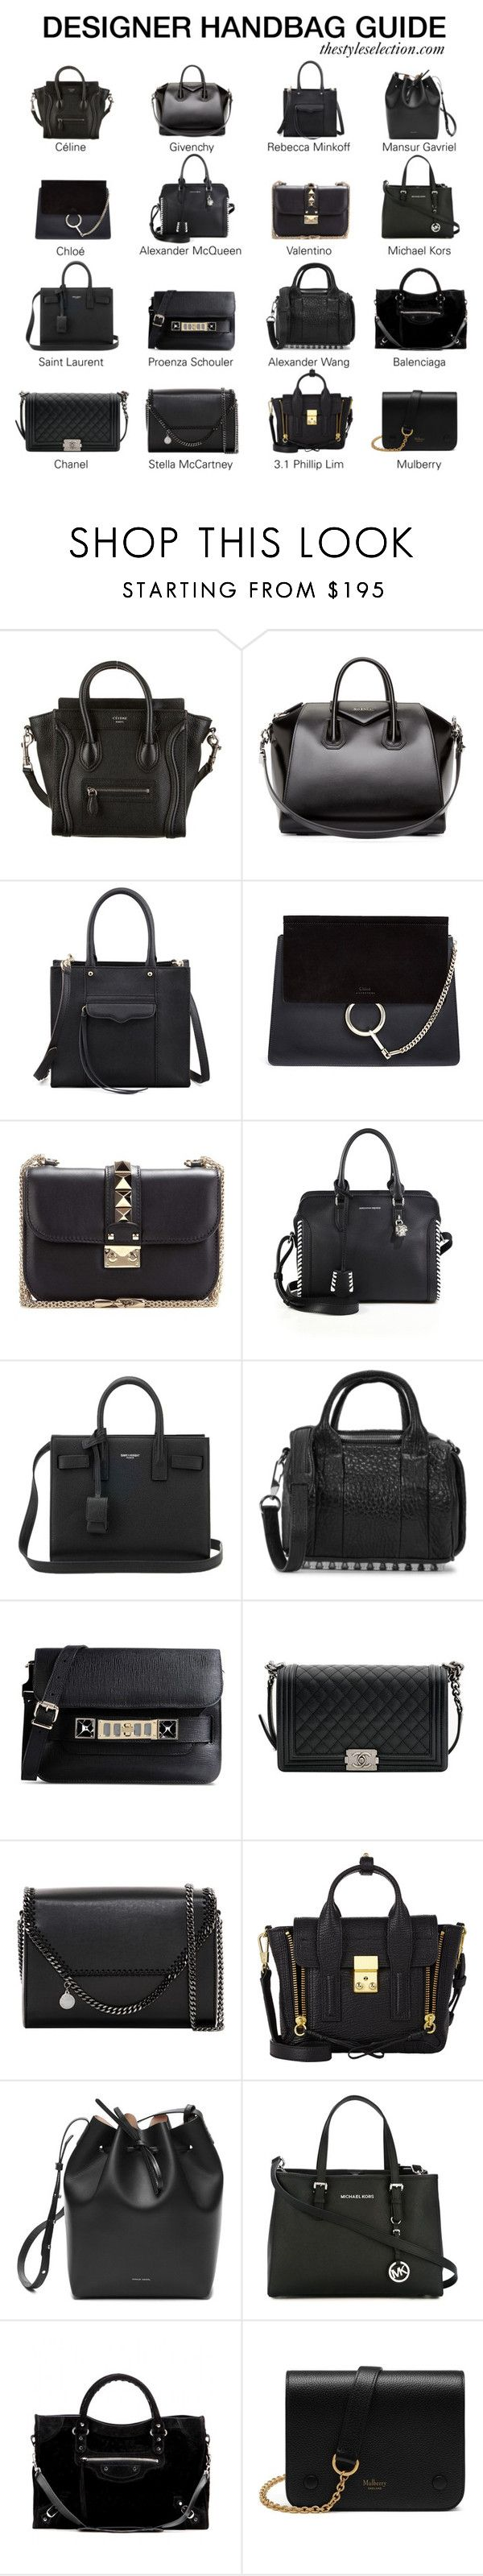 """Designer handbag guide"" by ferned ❤ liked on Polyvore featuring CÉLINE, Givenchy, Rebecca Minkoff, Chloé, Valentino, Alexander McQueen, Yves Saint Laurent, Alexander Wang, Proenza Schouler and Chanel"